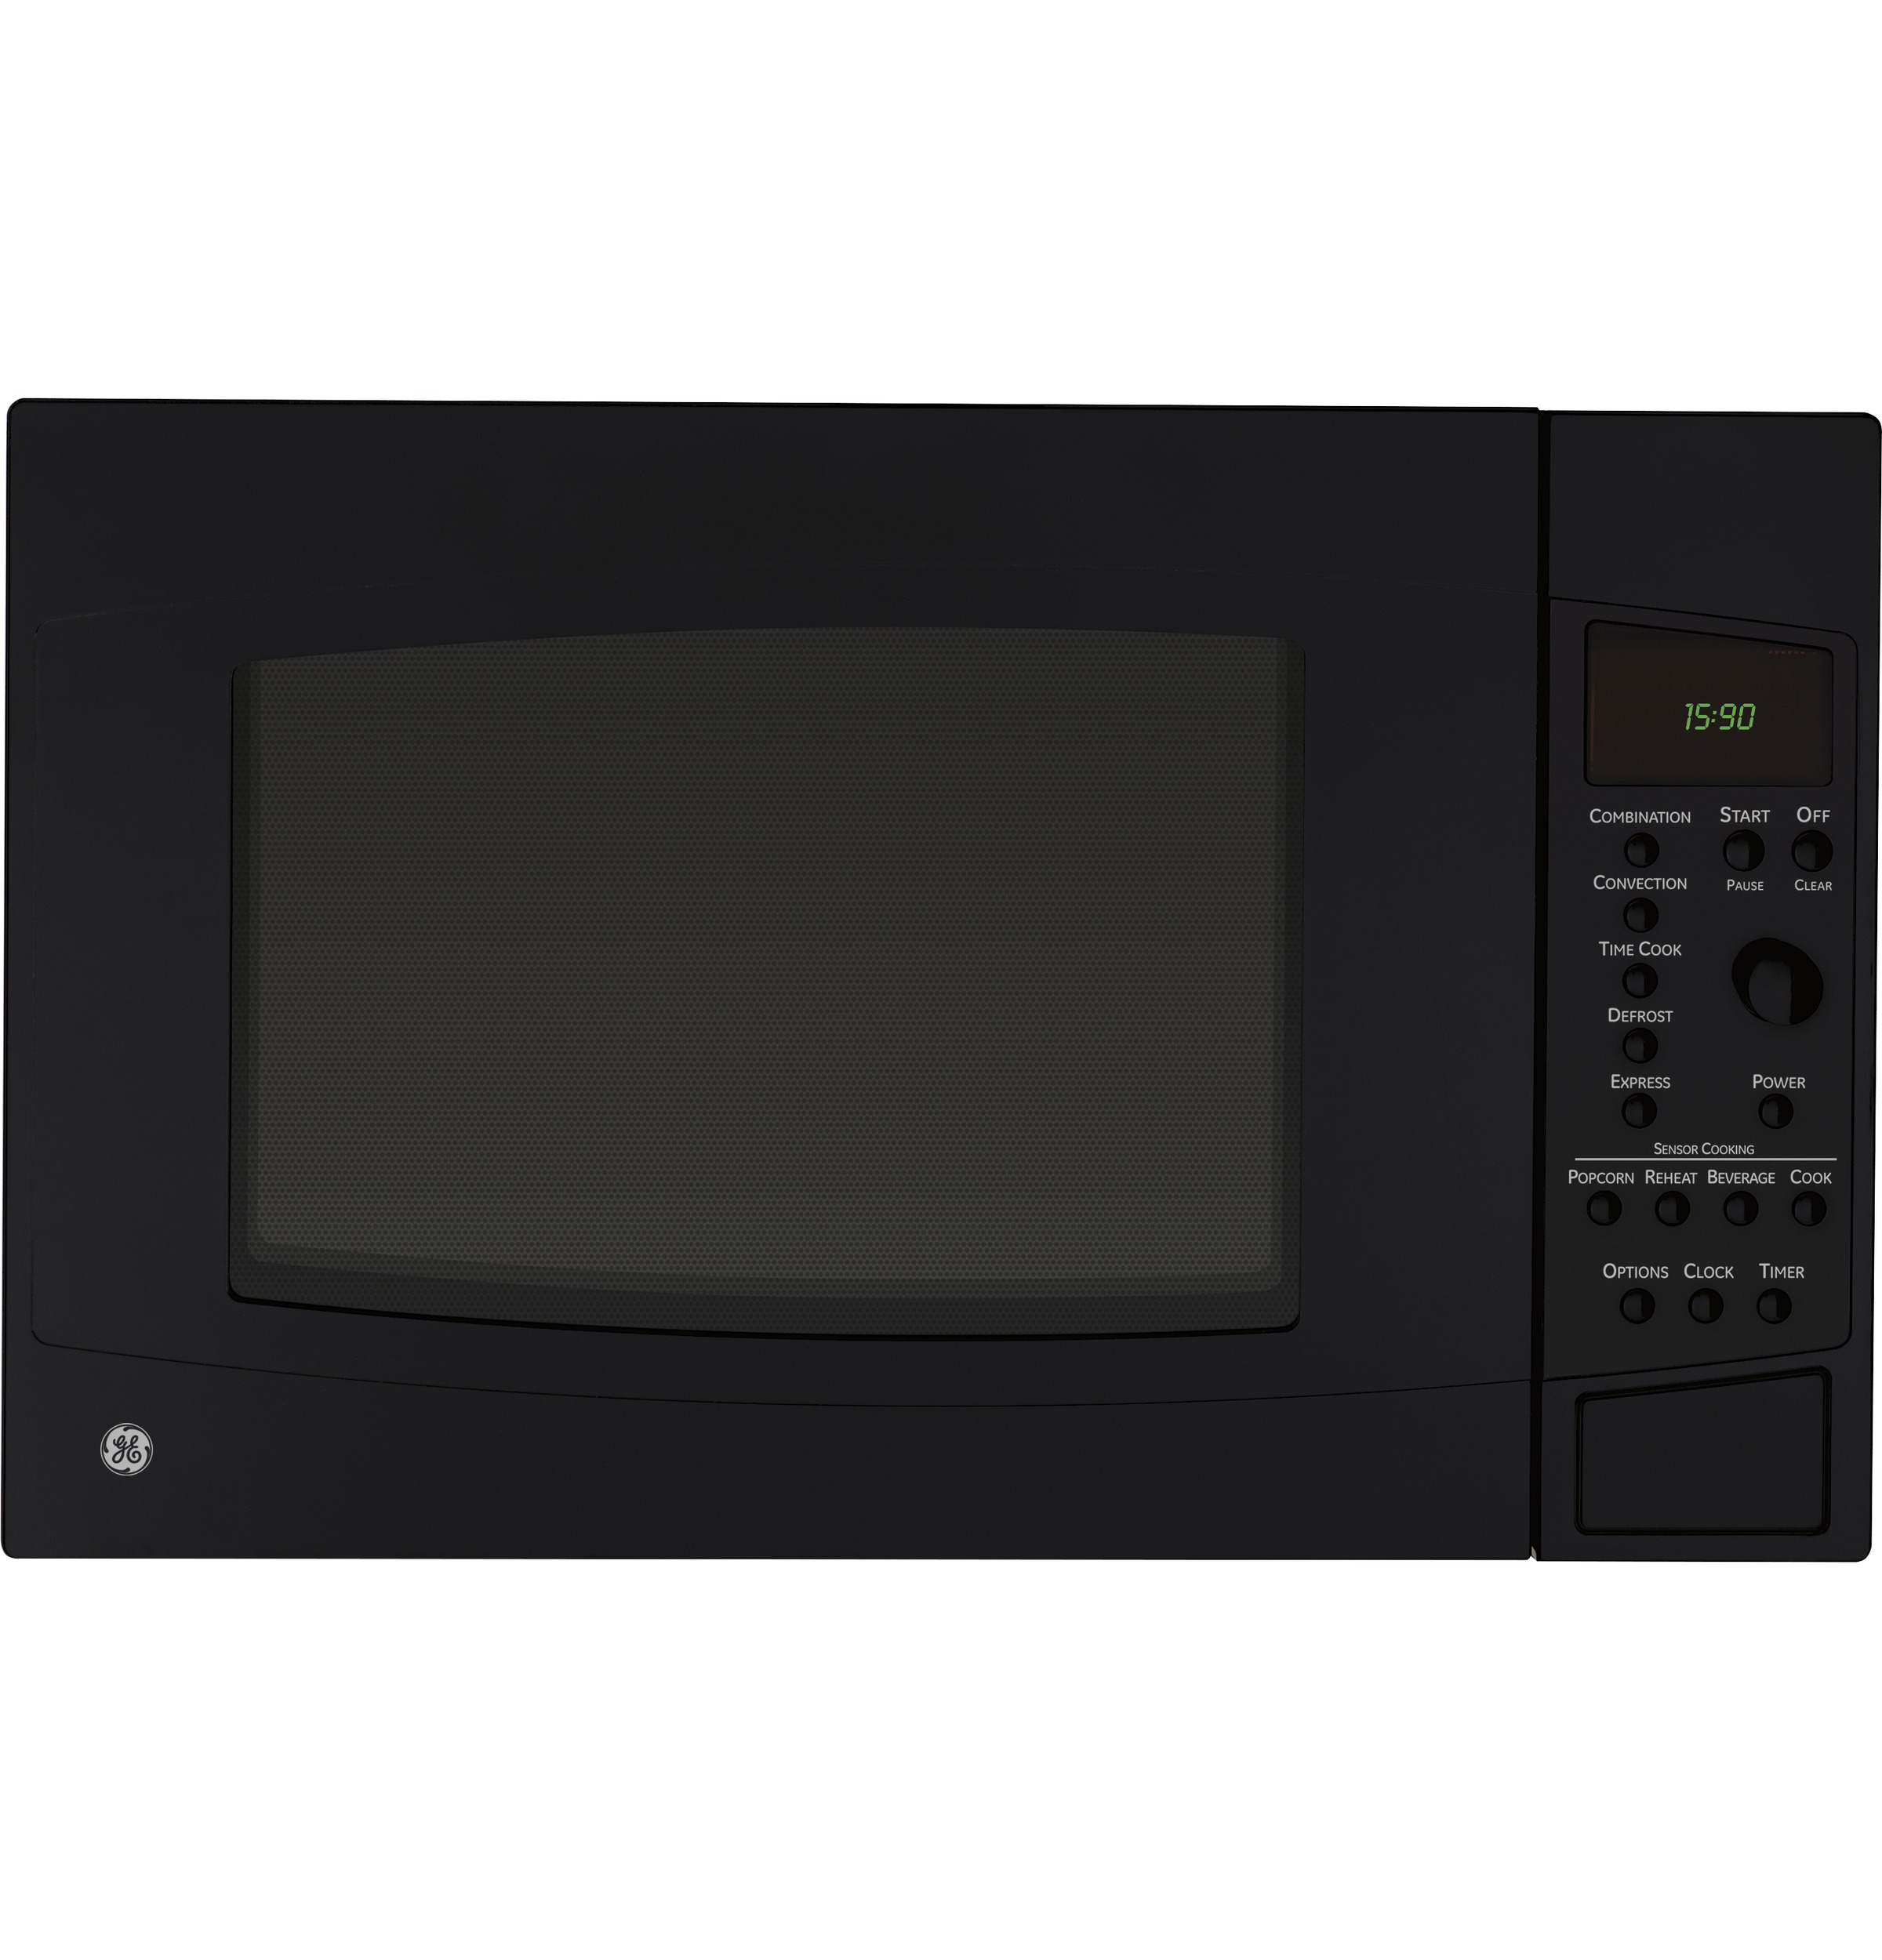 Countertop Convection Oven With Microwave : ... Ft. Countertop Convection/Microwave Oven PEB1590DMBB GE Appliances